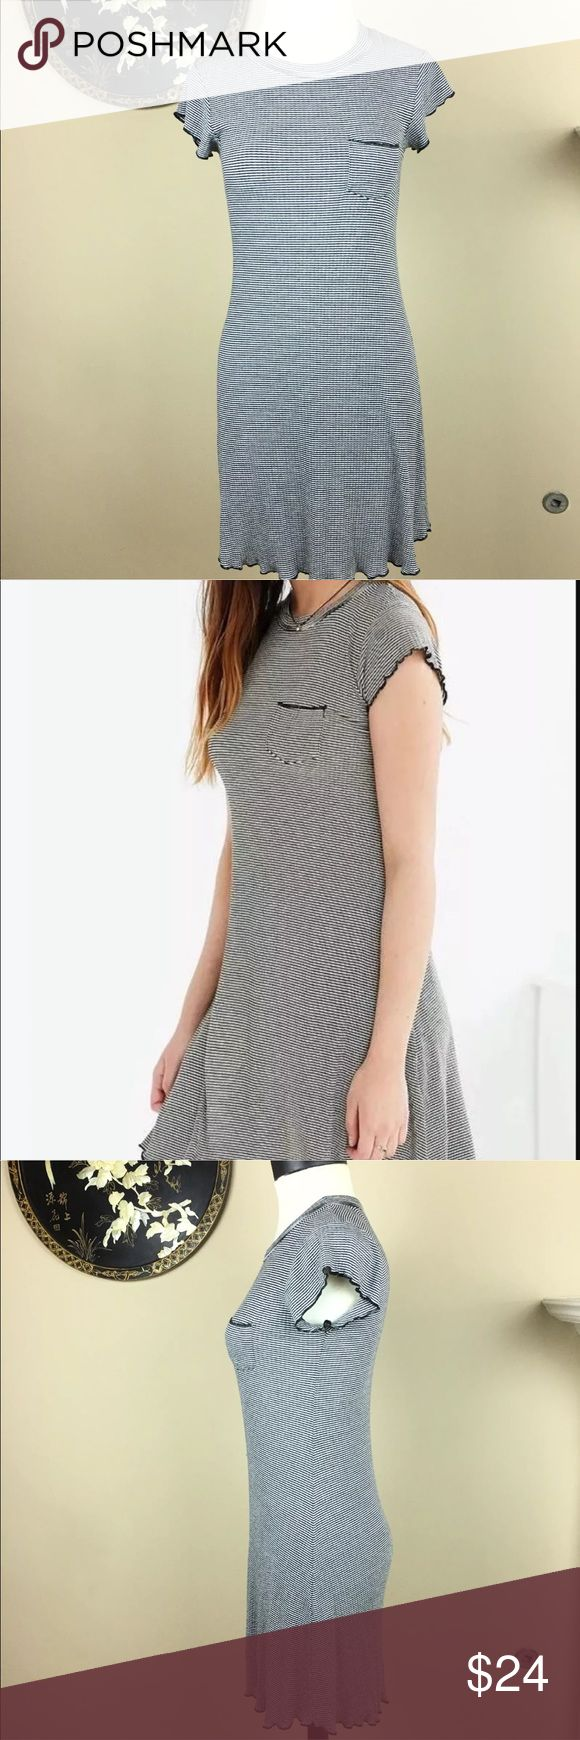 BDG Urban Outfitters Womens T-Shirt Dress  M BDG Urban Outfitters Womens T Shirt Dress Size M Ribbed Black White Stripped  Cute up your casual look with this cap-sleeve camper dress from UO-original label BDG. Stretchy ribbed knit cut close to the body with a flared bottom for a classically femme fit. Detailed with a banded crewneck, chest pocket, and lettuce edges all over.   THINGS TO KNOW:  - Cotton, spandex  - Machine wash BDG Dresses